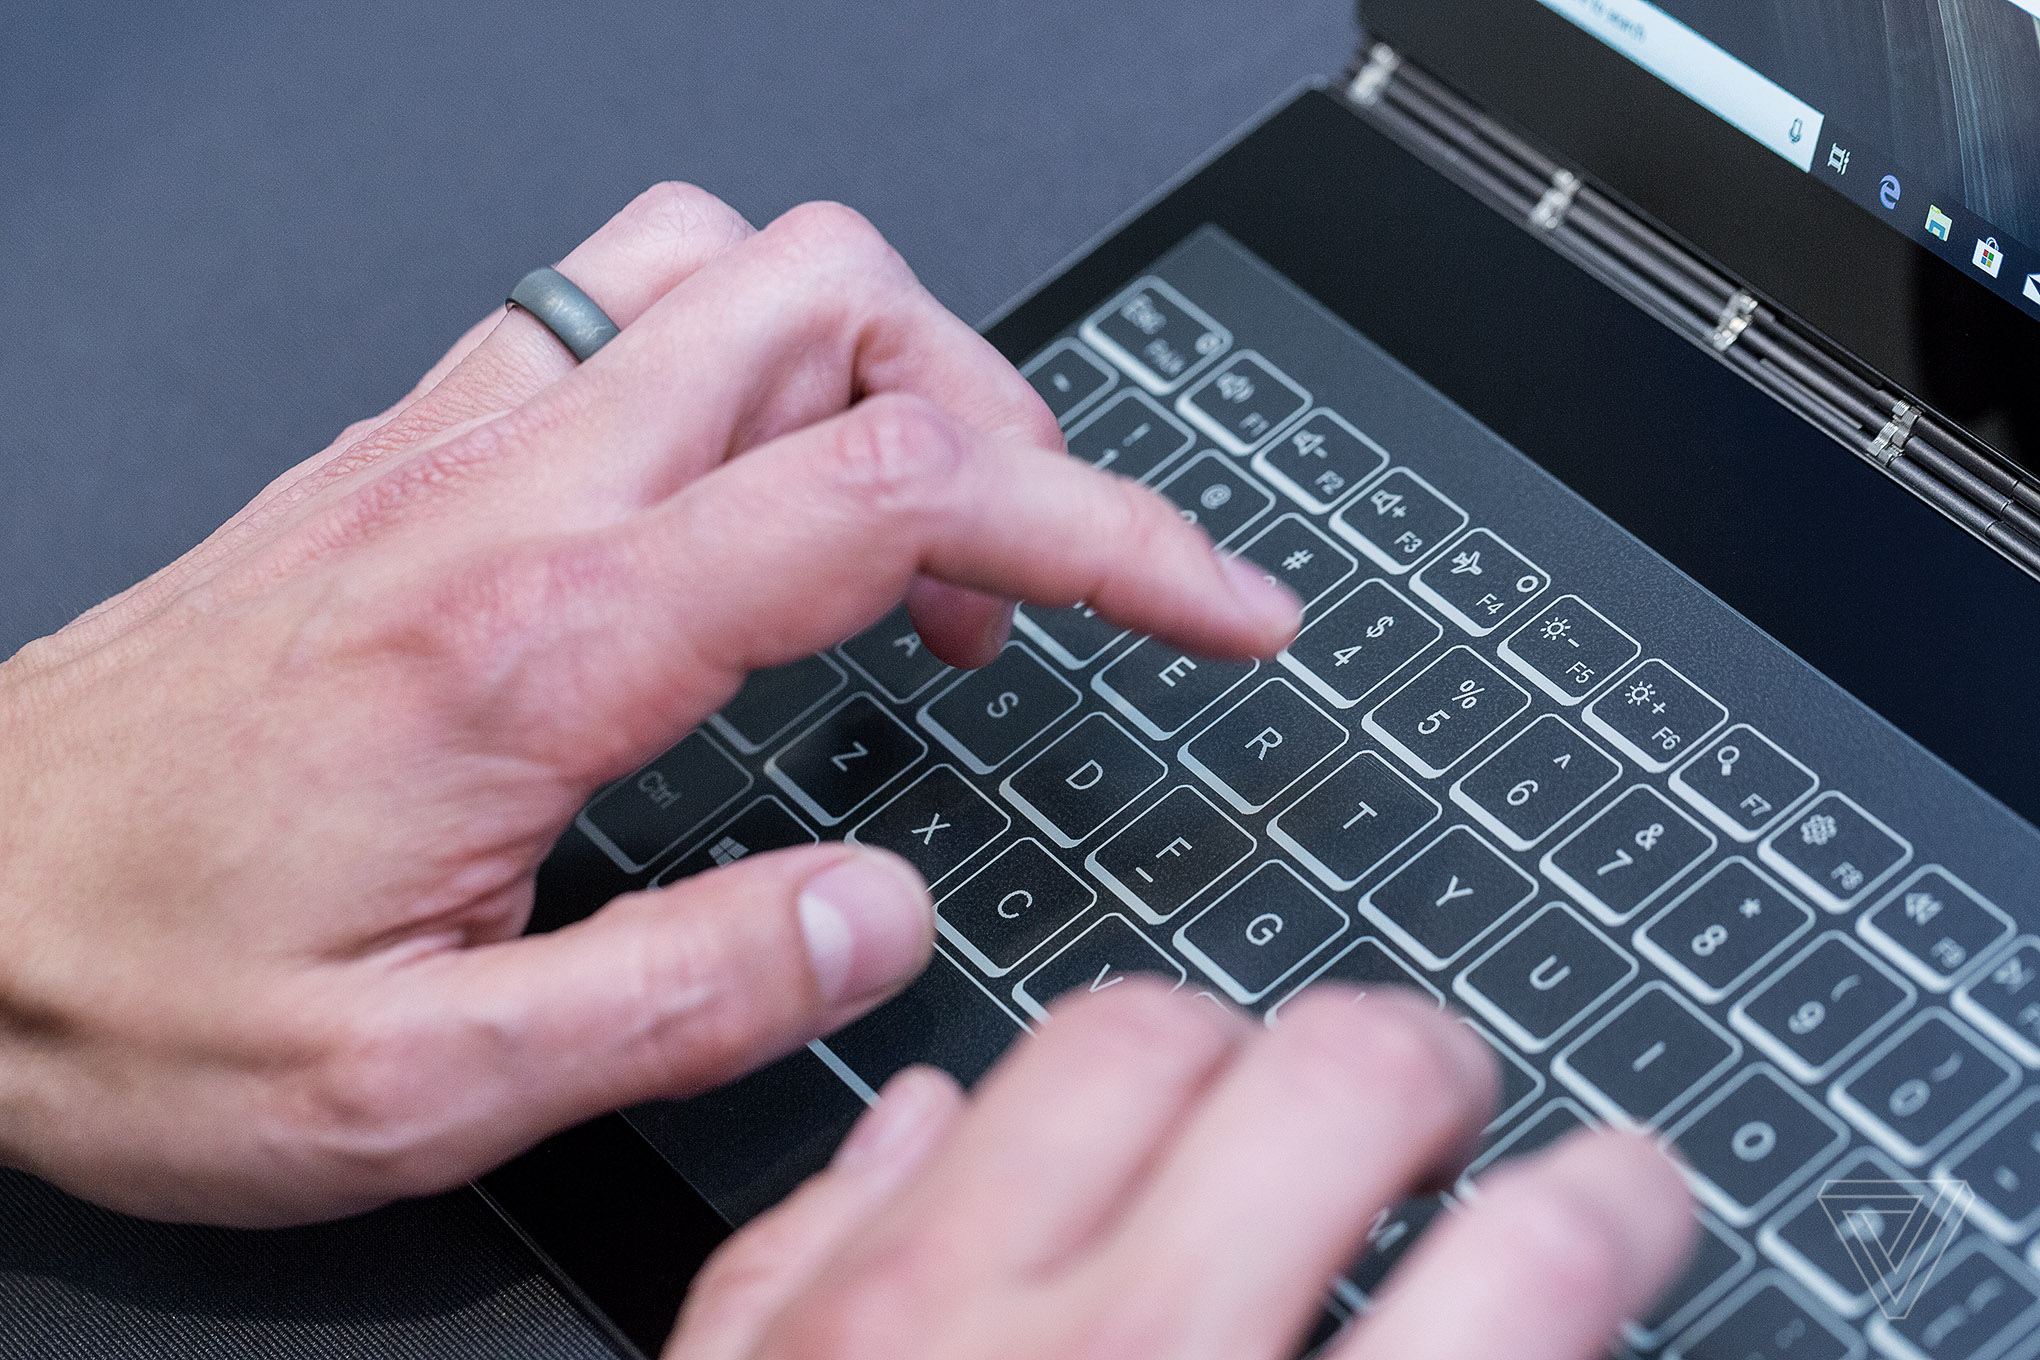 Lenovo's new Yoga Book replaces the keyboard with an E Ink